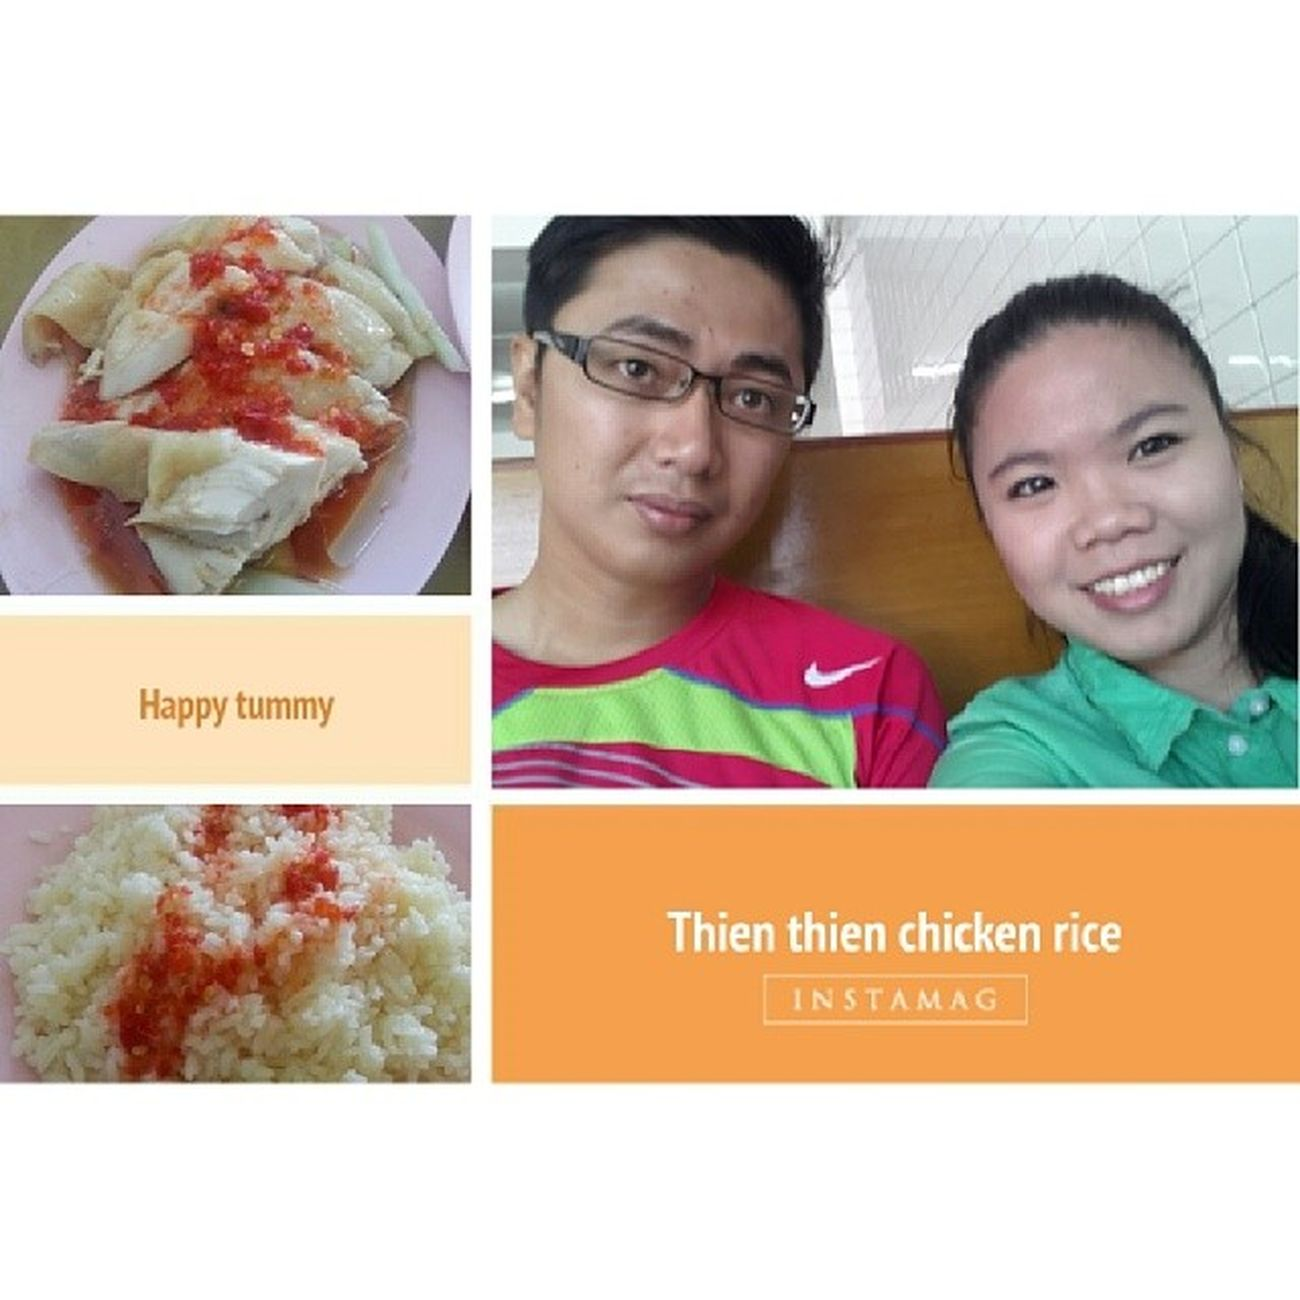 Finally sampai jua hajat. Lunch at Thienthienchickenrice Yummy best Chickenrice in town with baby @harmoneylate